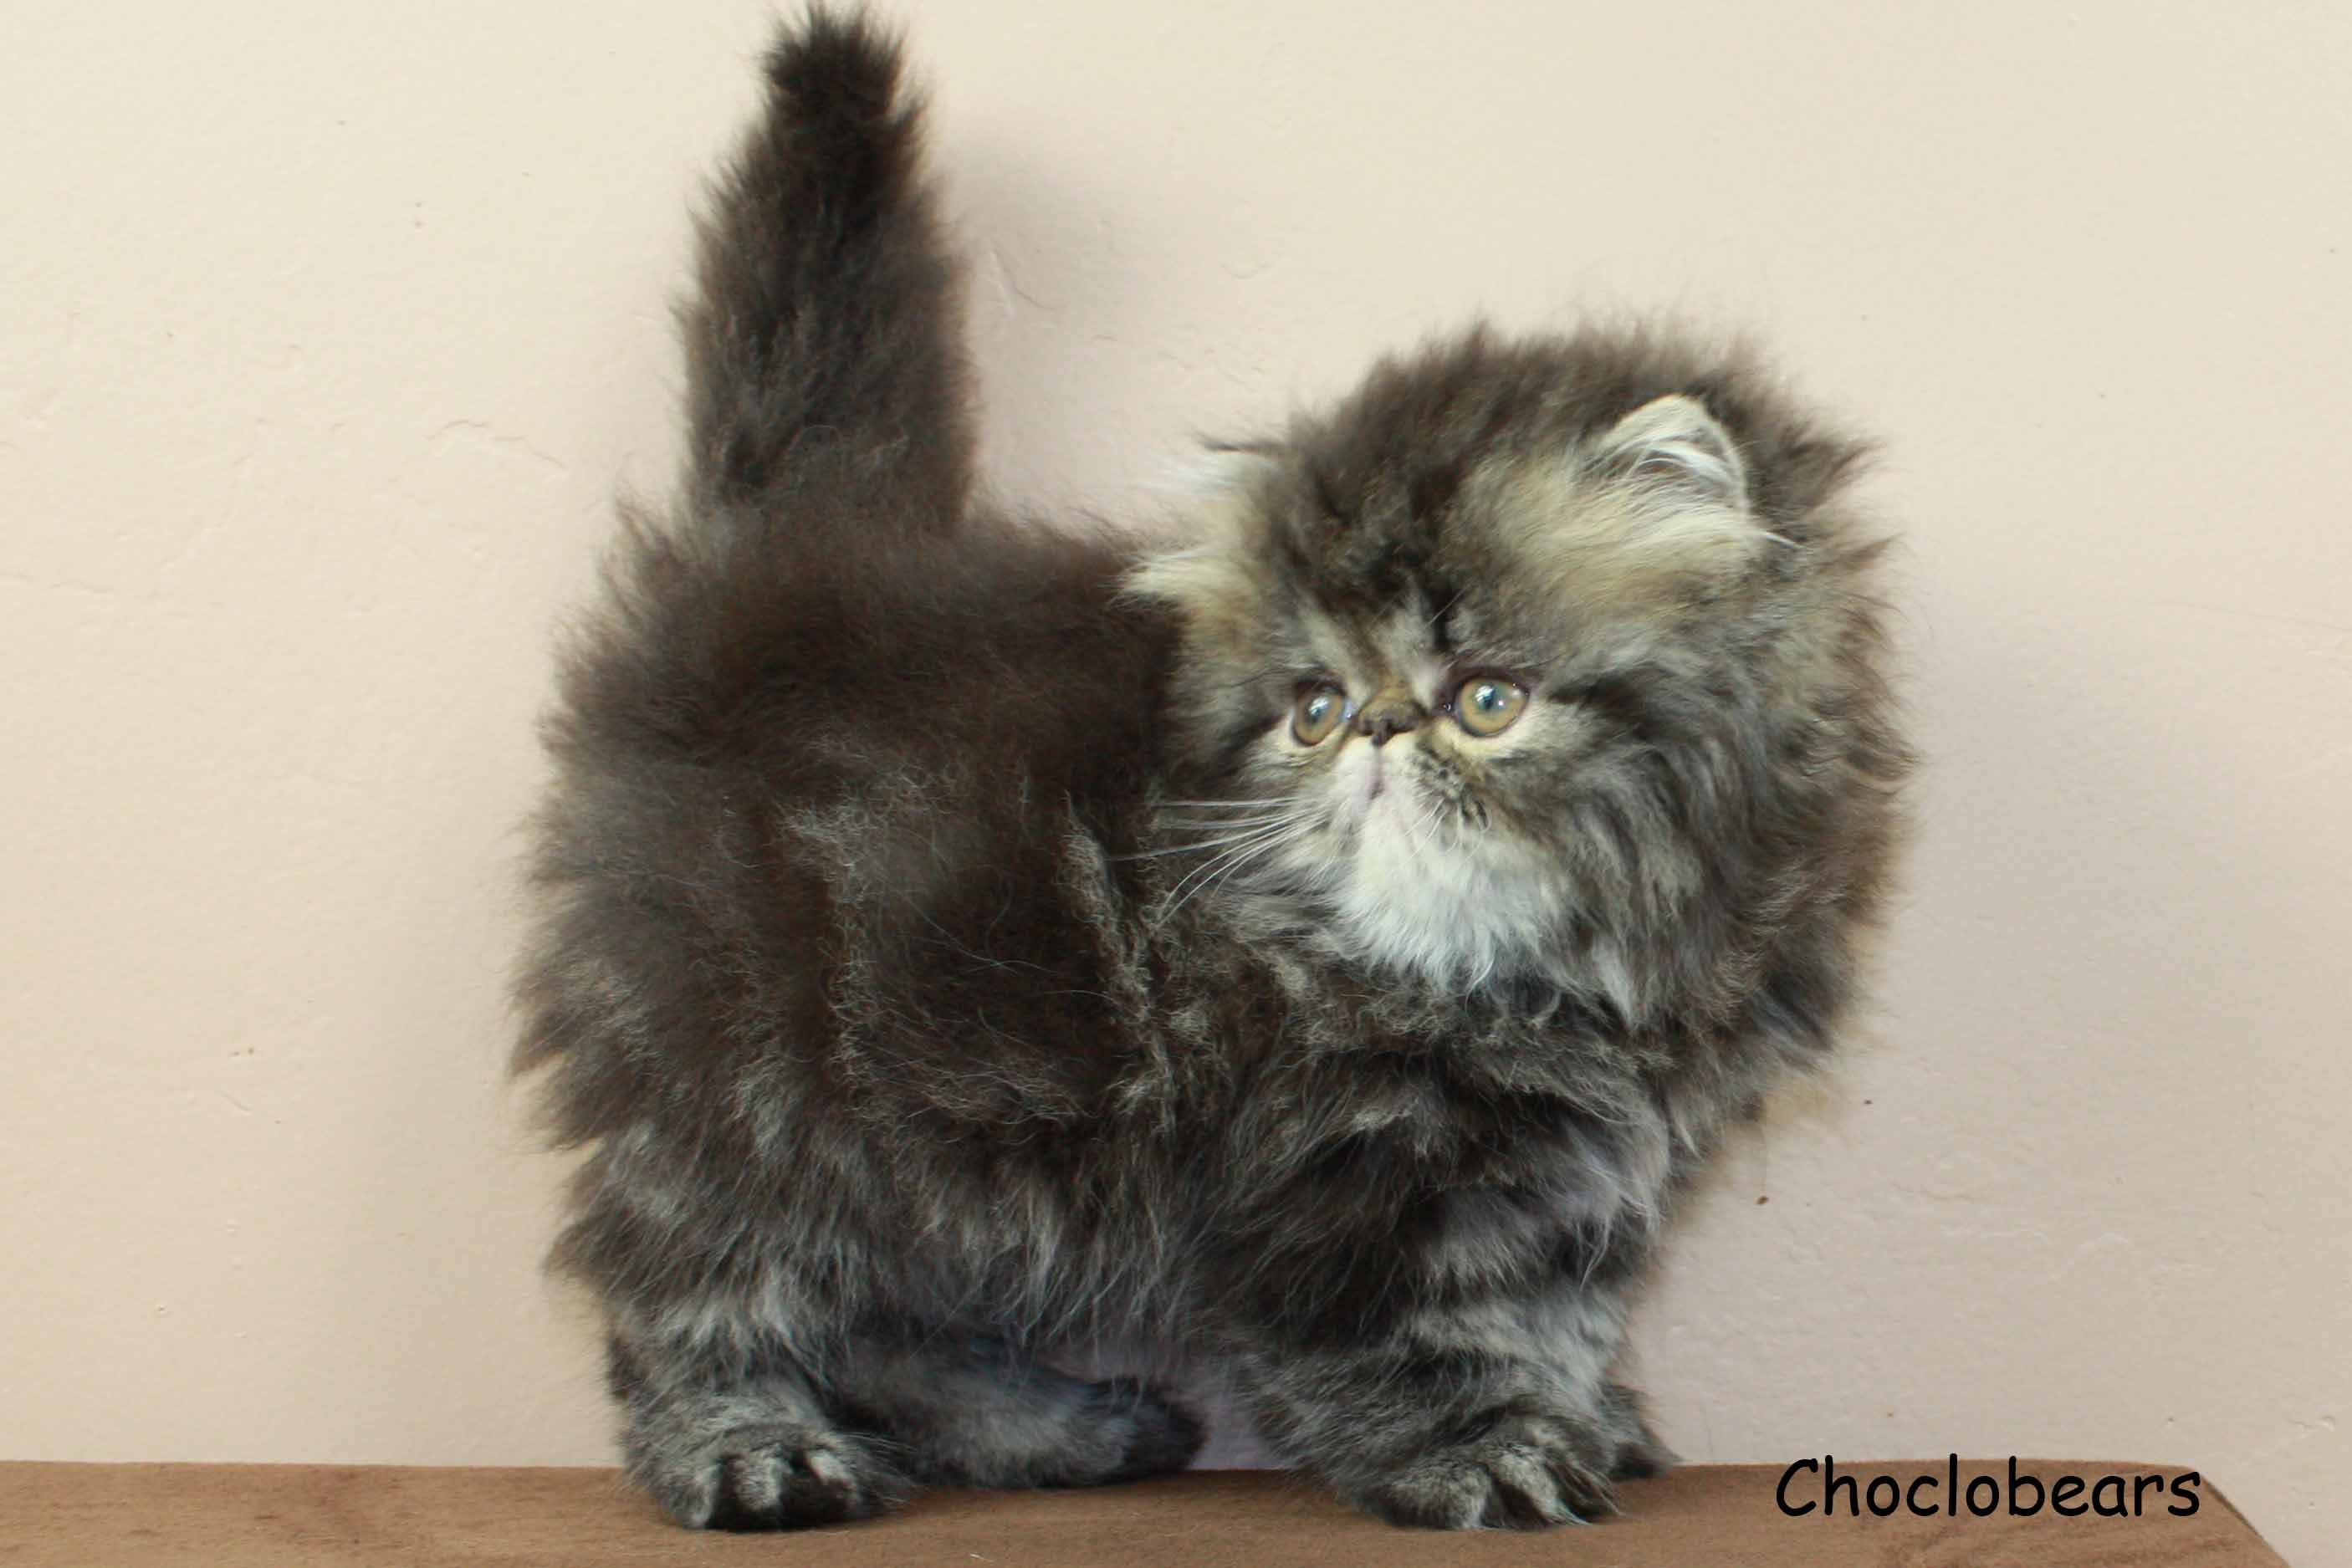 Pin On Choclobears Exotic Shorthair Persian And Himalayan Cats